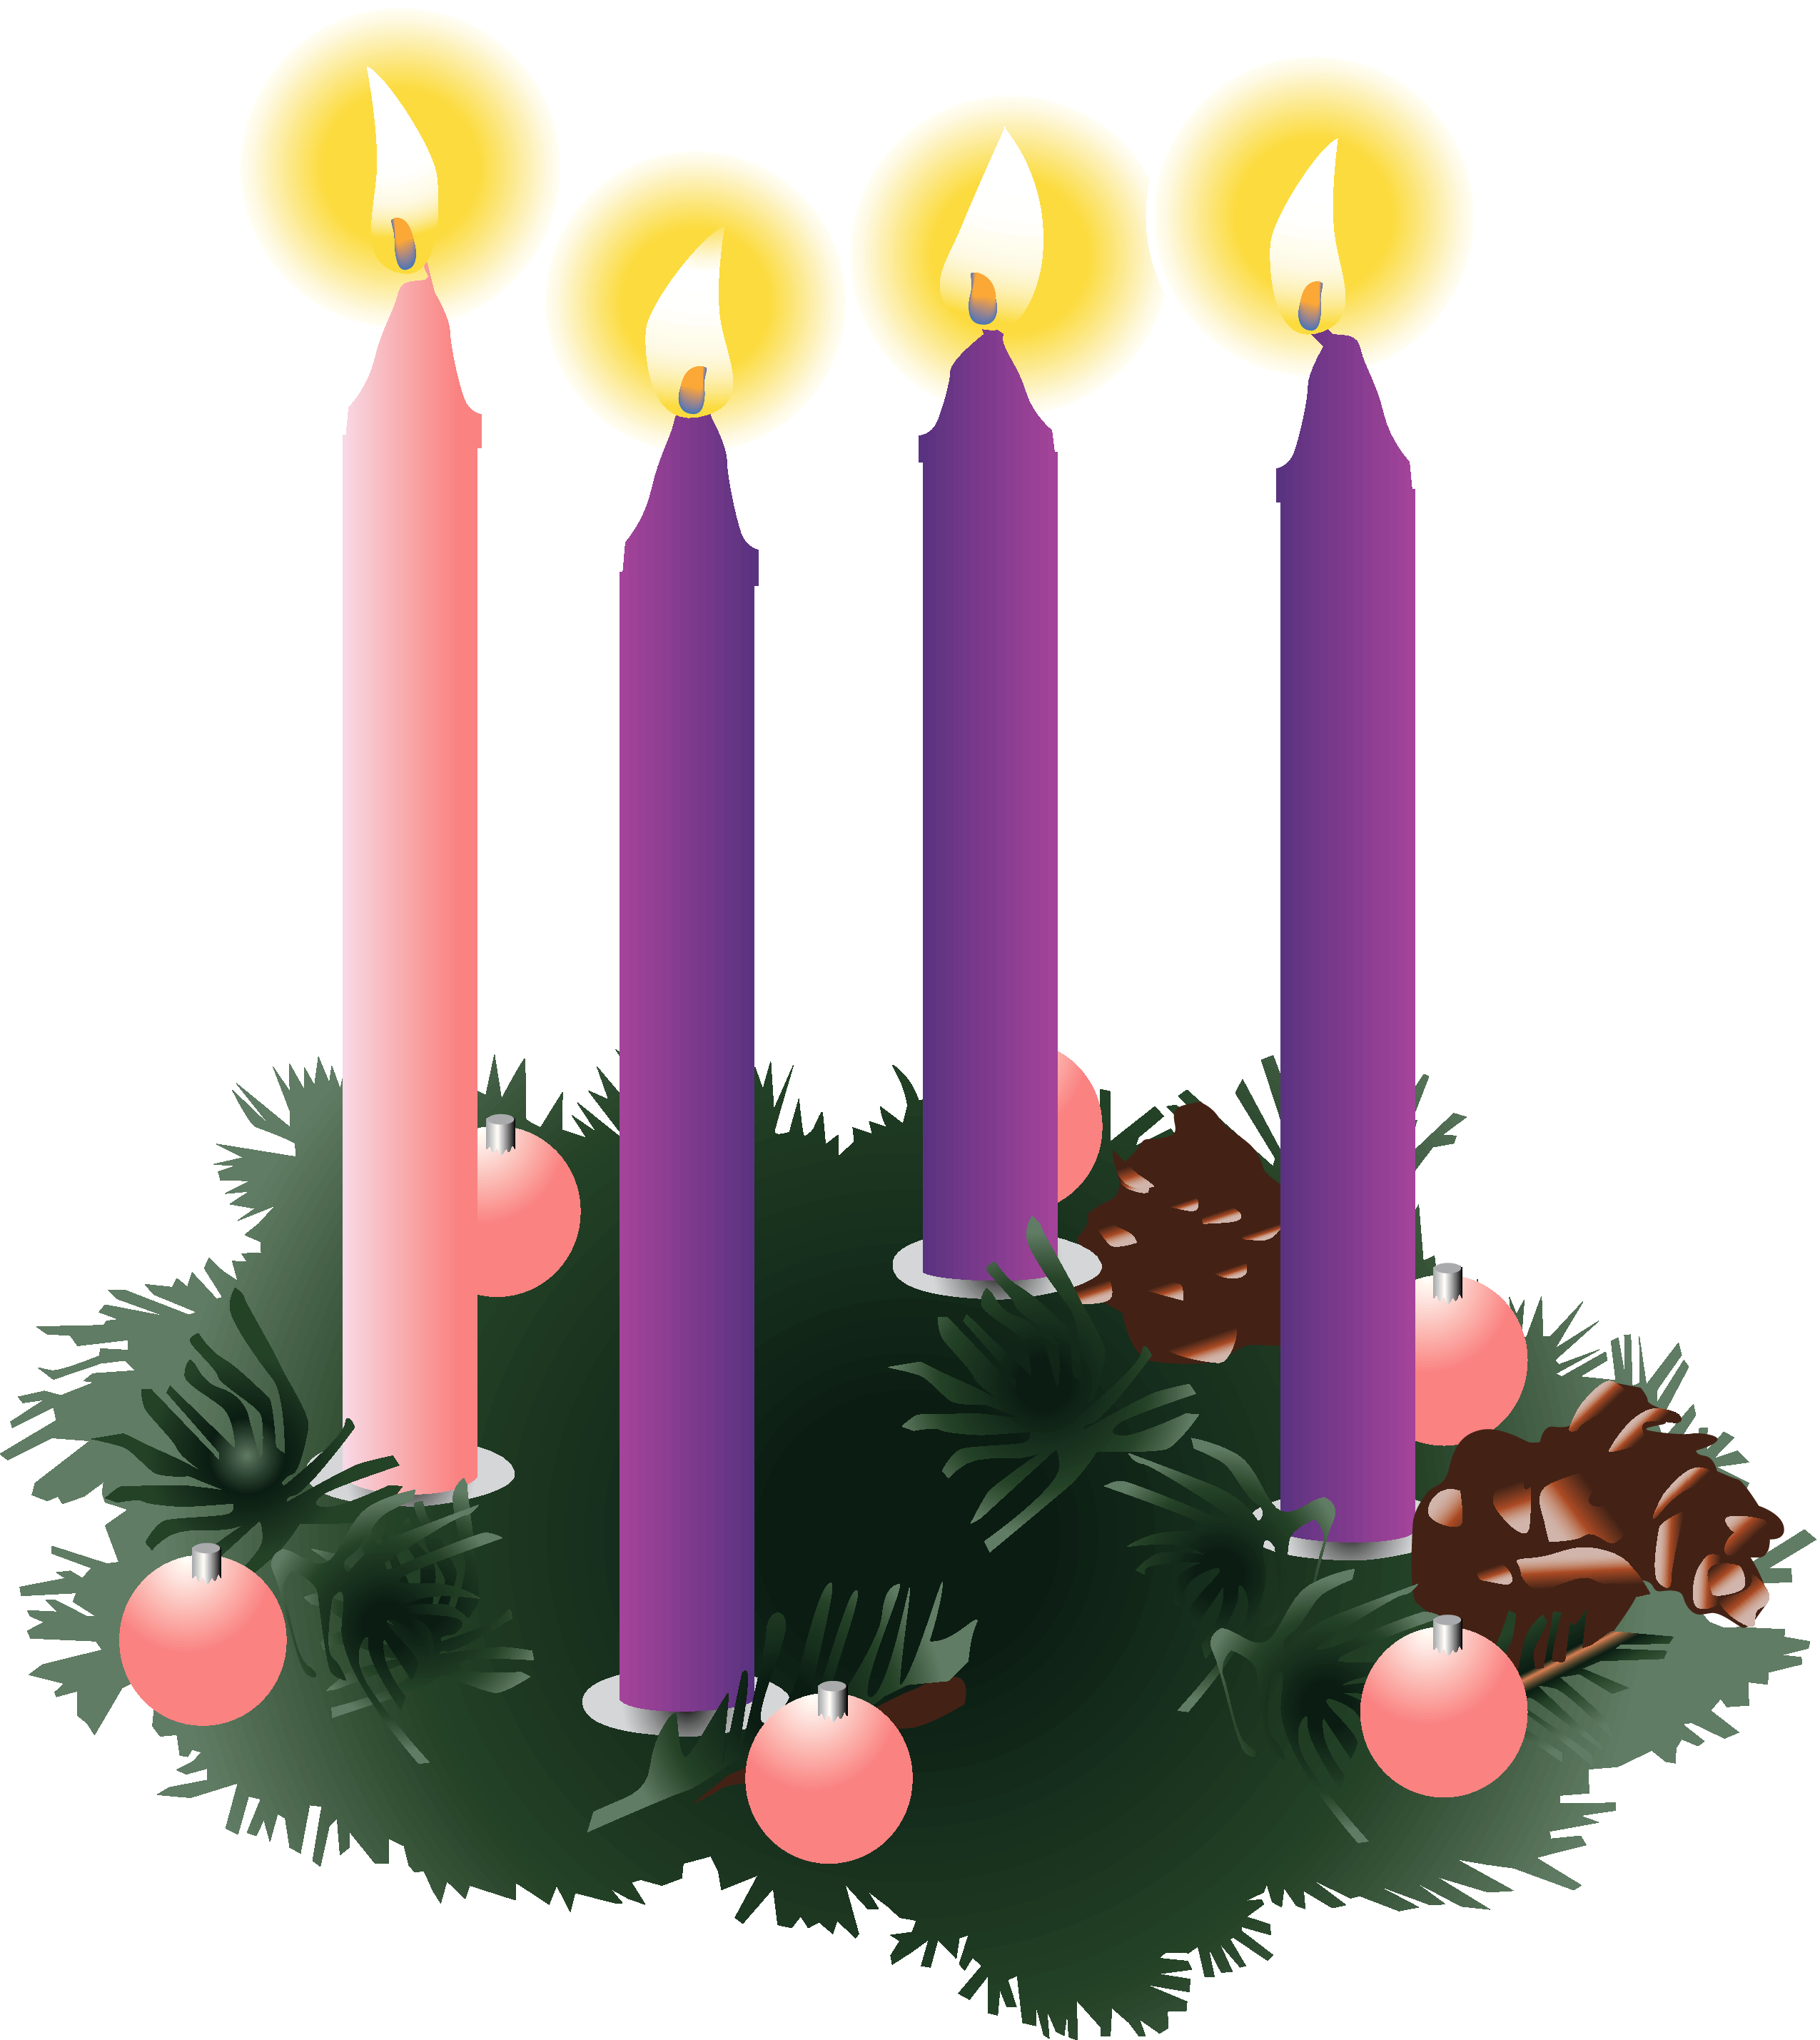 Christmas advent clipart transparent stock Advent Family Project Craft Making: Nov 29 & Dec 3 - The Church of ... transparent stock